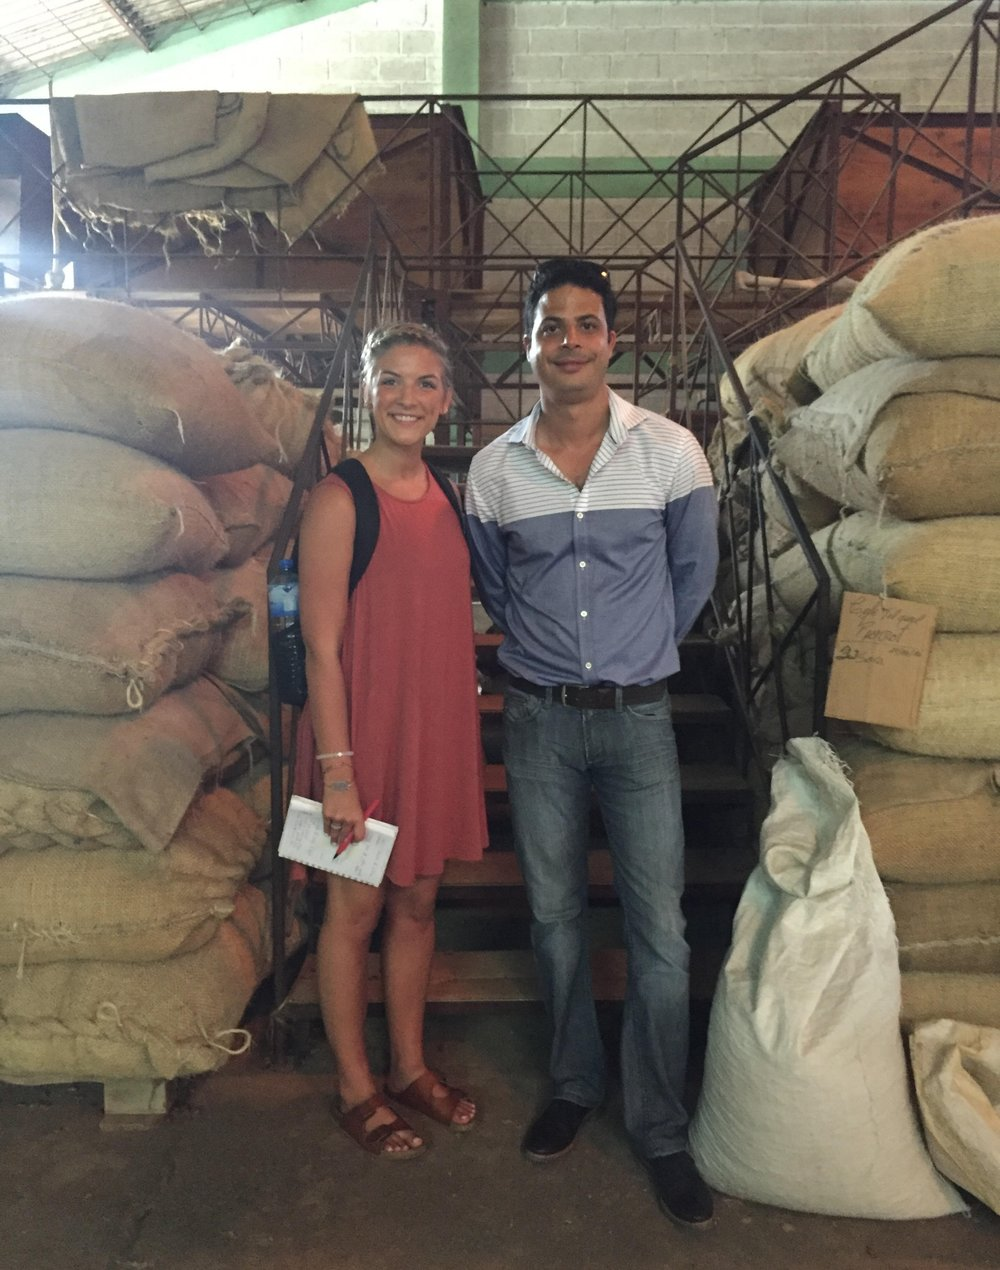 Douglas and I stopped for a picture while touring Selecto Coffee. This was my first trip to Haiti + Douglas was my first connection. Because of him, I was able to meet my farmers! 7/12/16